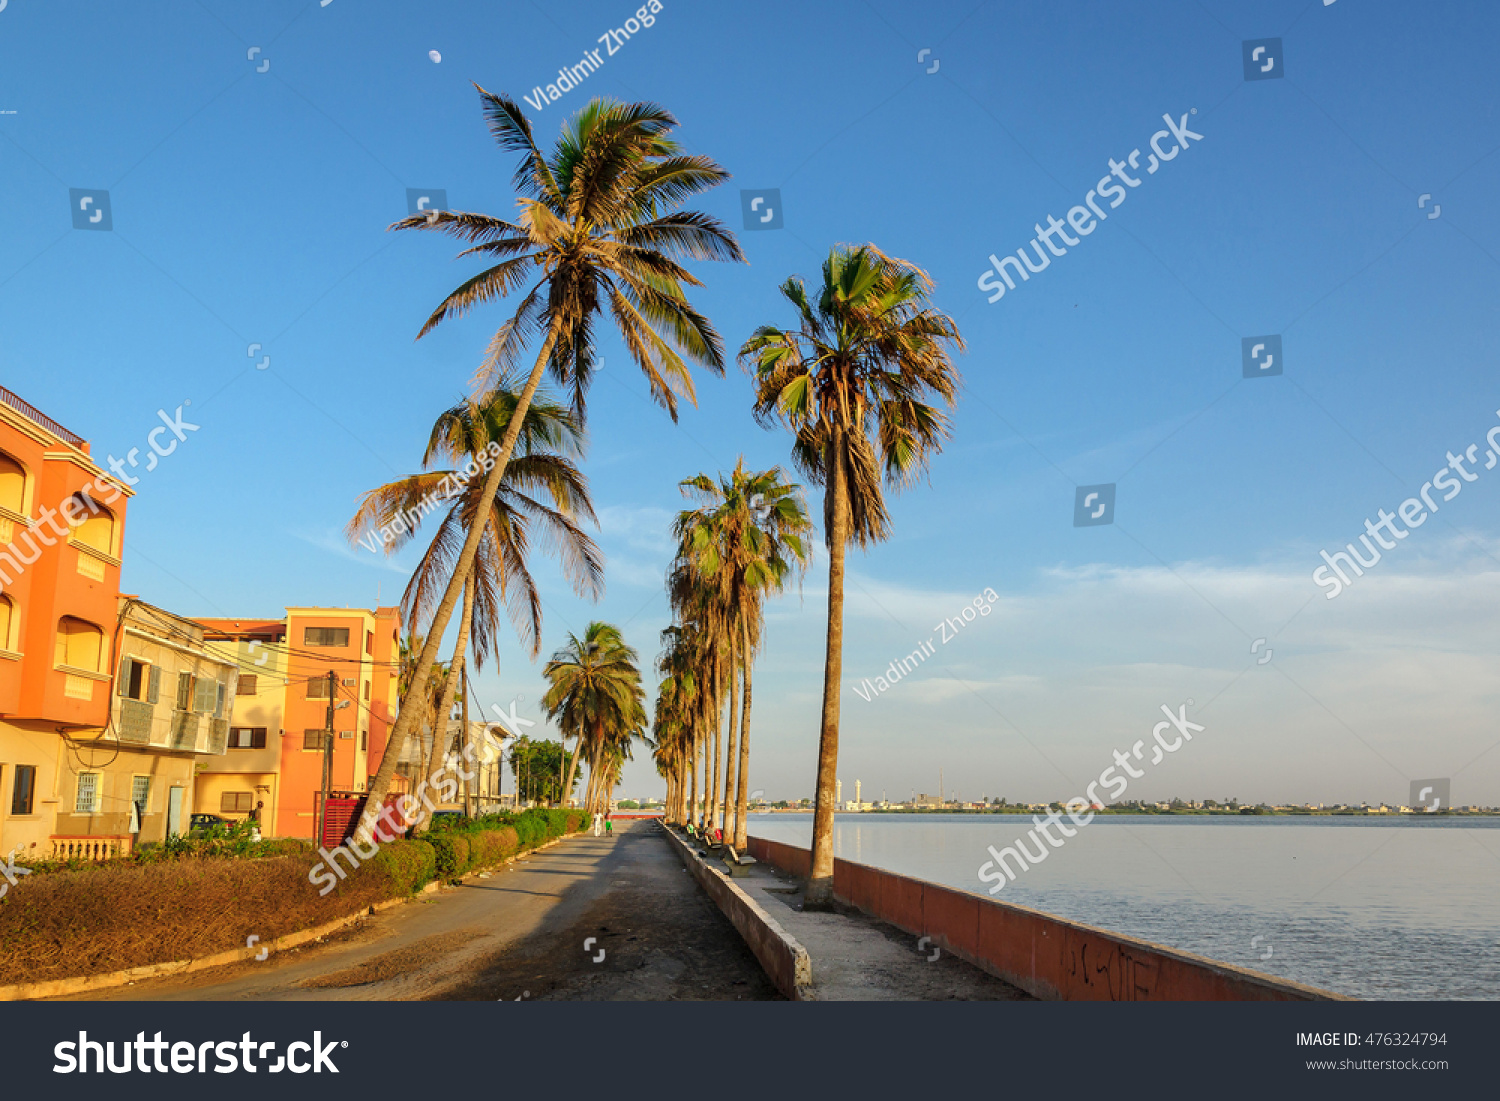 Coastal street with high palm trees during sunset in Saint-Louis, Senegal #476324794